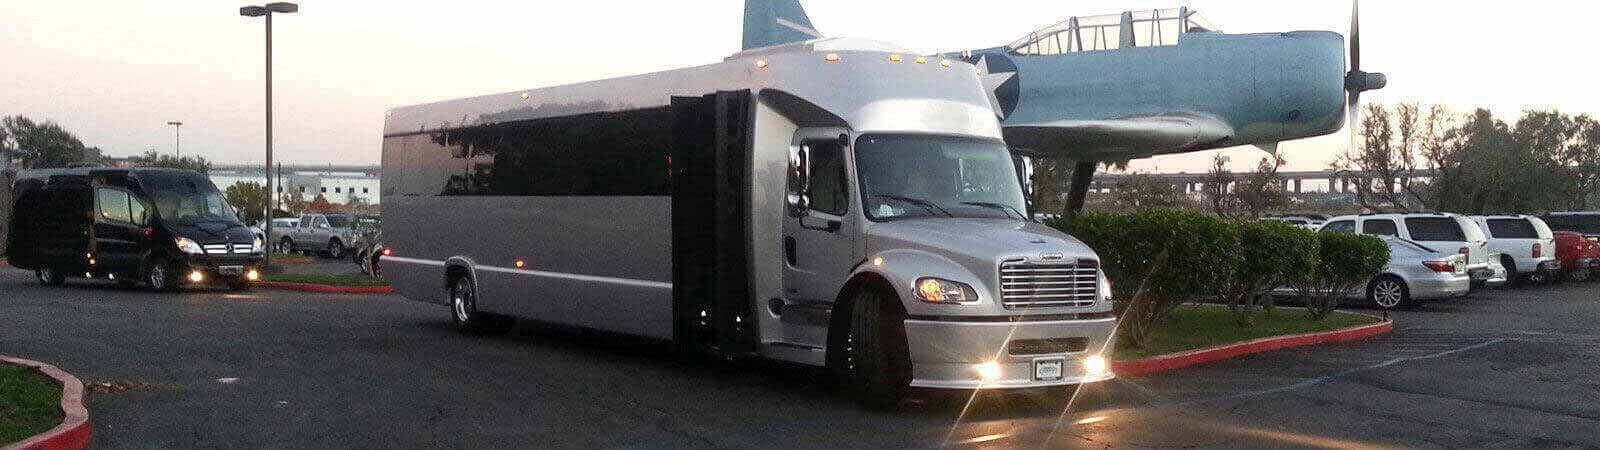 executive party bus rental